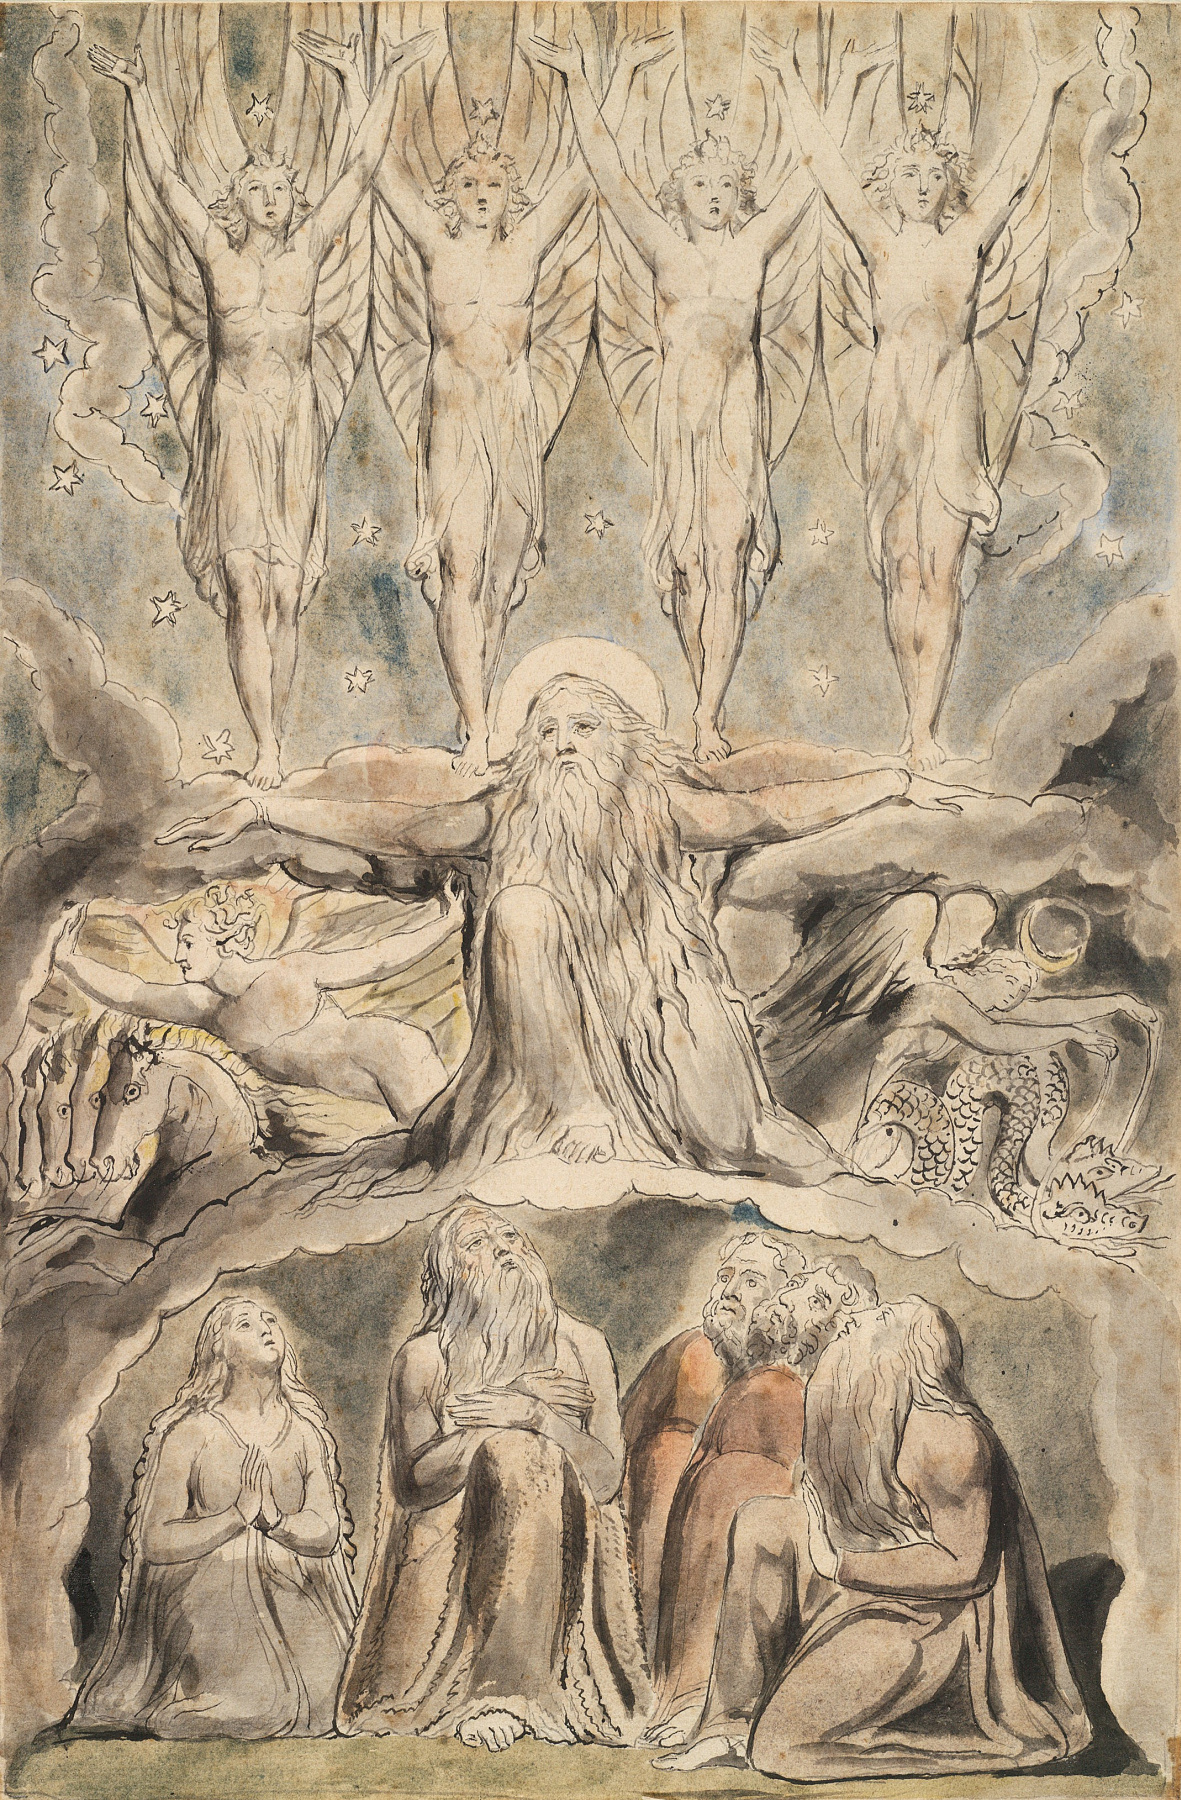 William Blake. The Book Of Job. When the morning stars sang together...